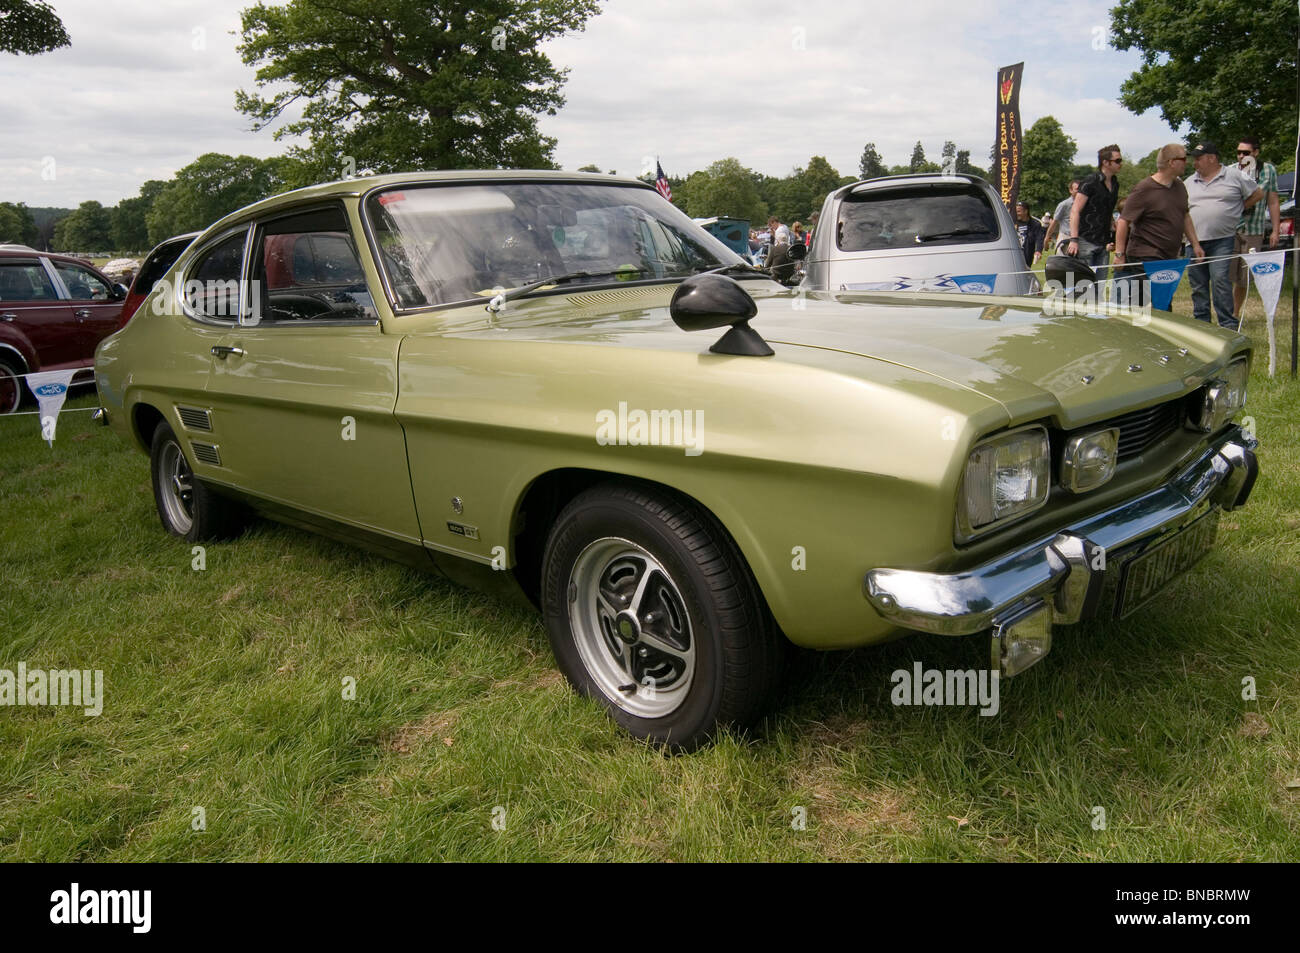 Highly Polished Classic Car Stock Photos Highly Polished Classic - Restore a muscle car car show